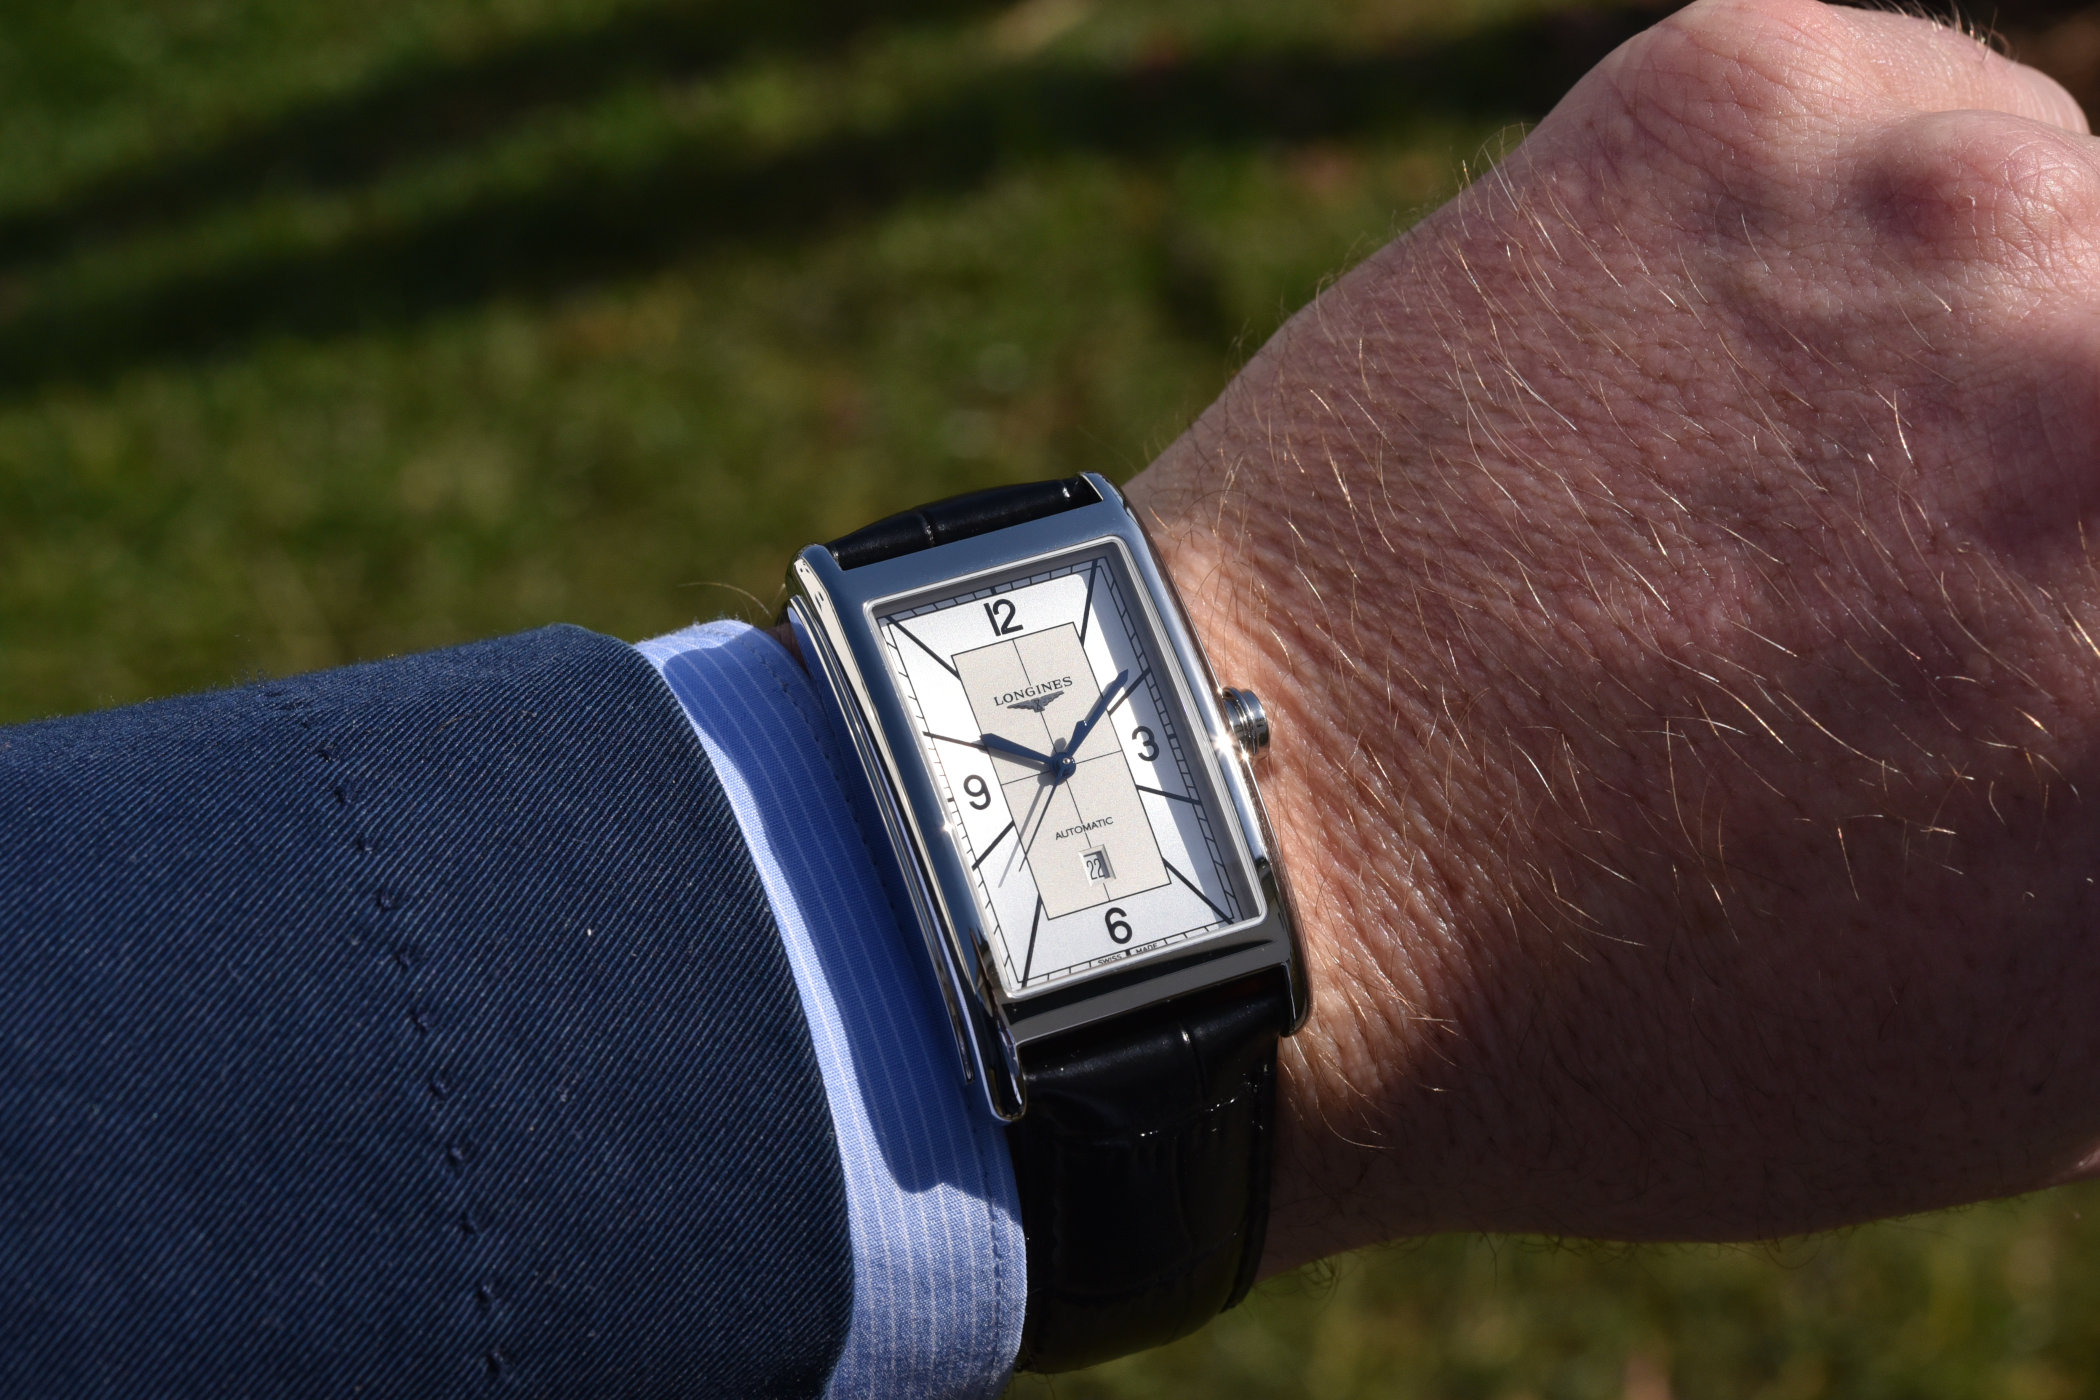 Longines DolceVita Sector Dial - Monochrome Watches